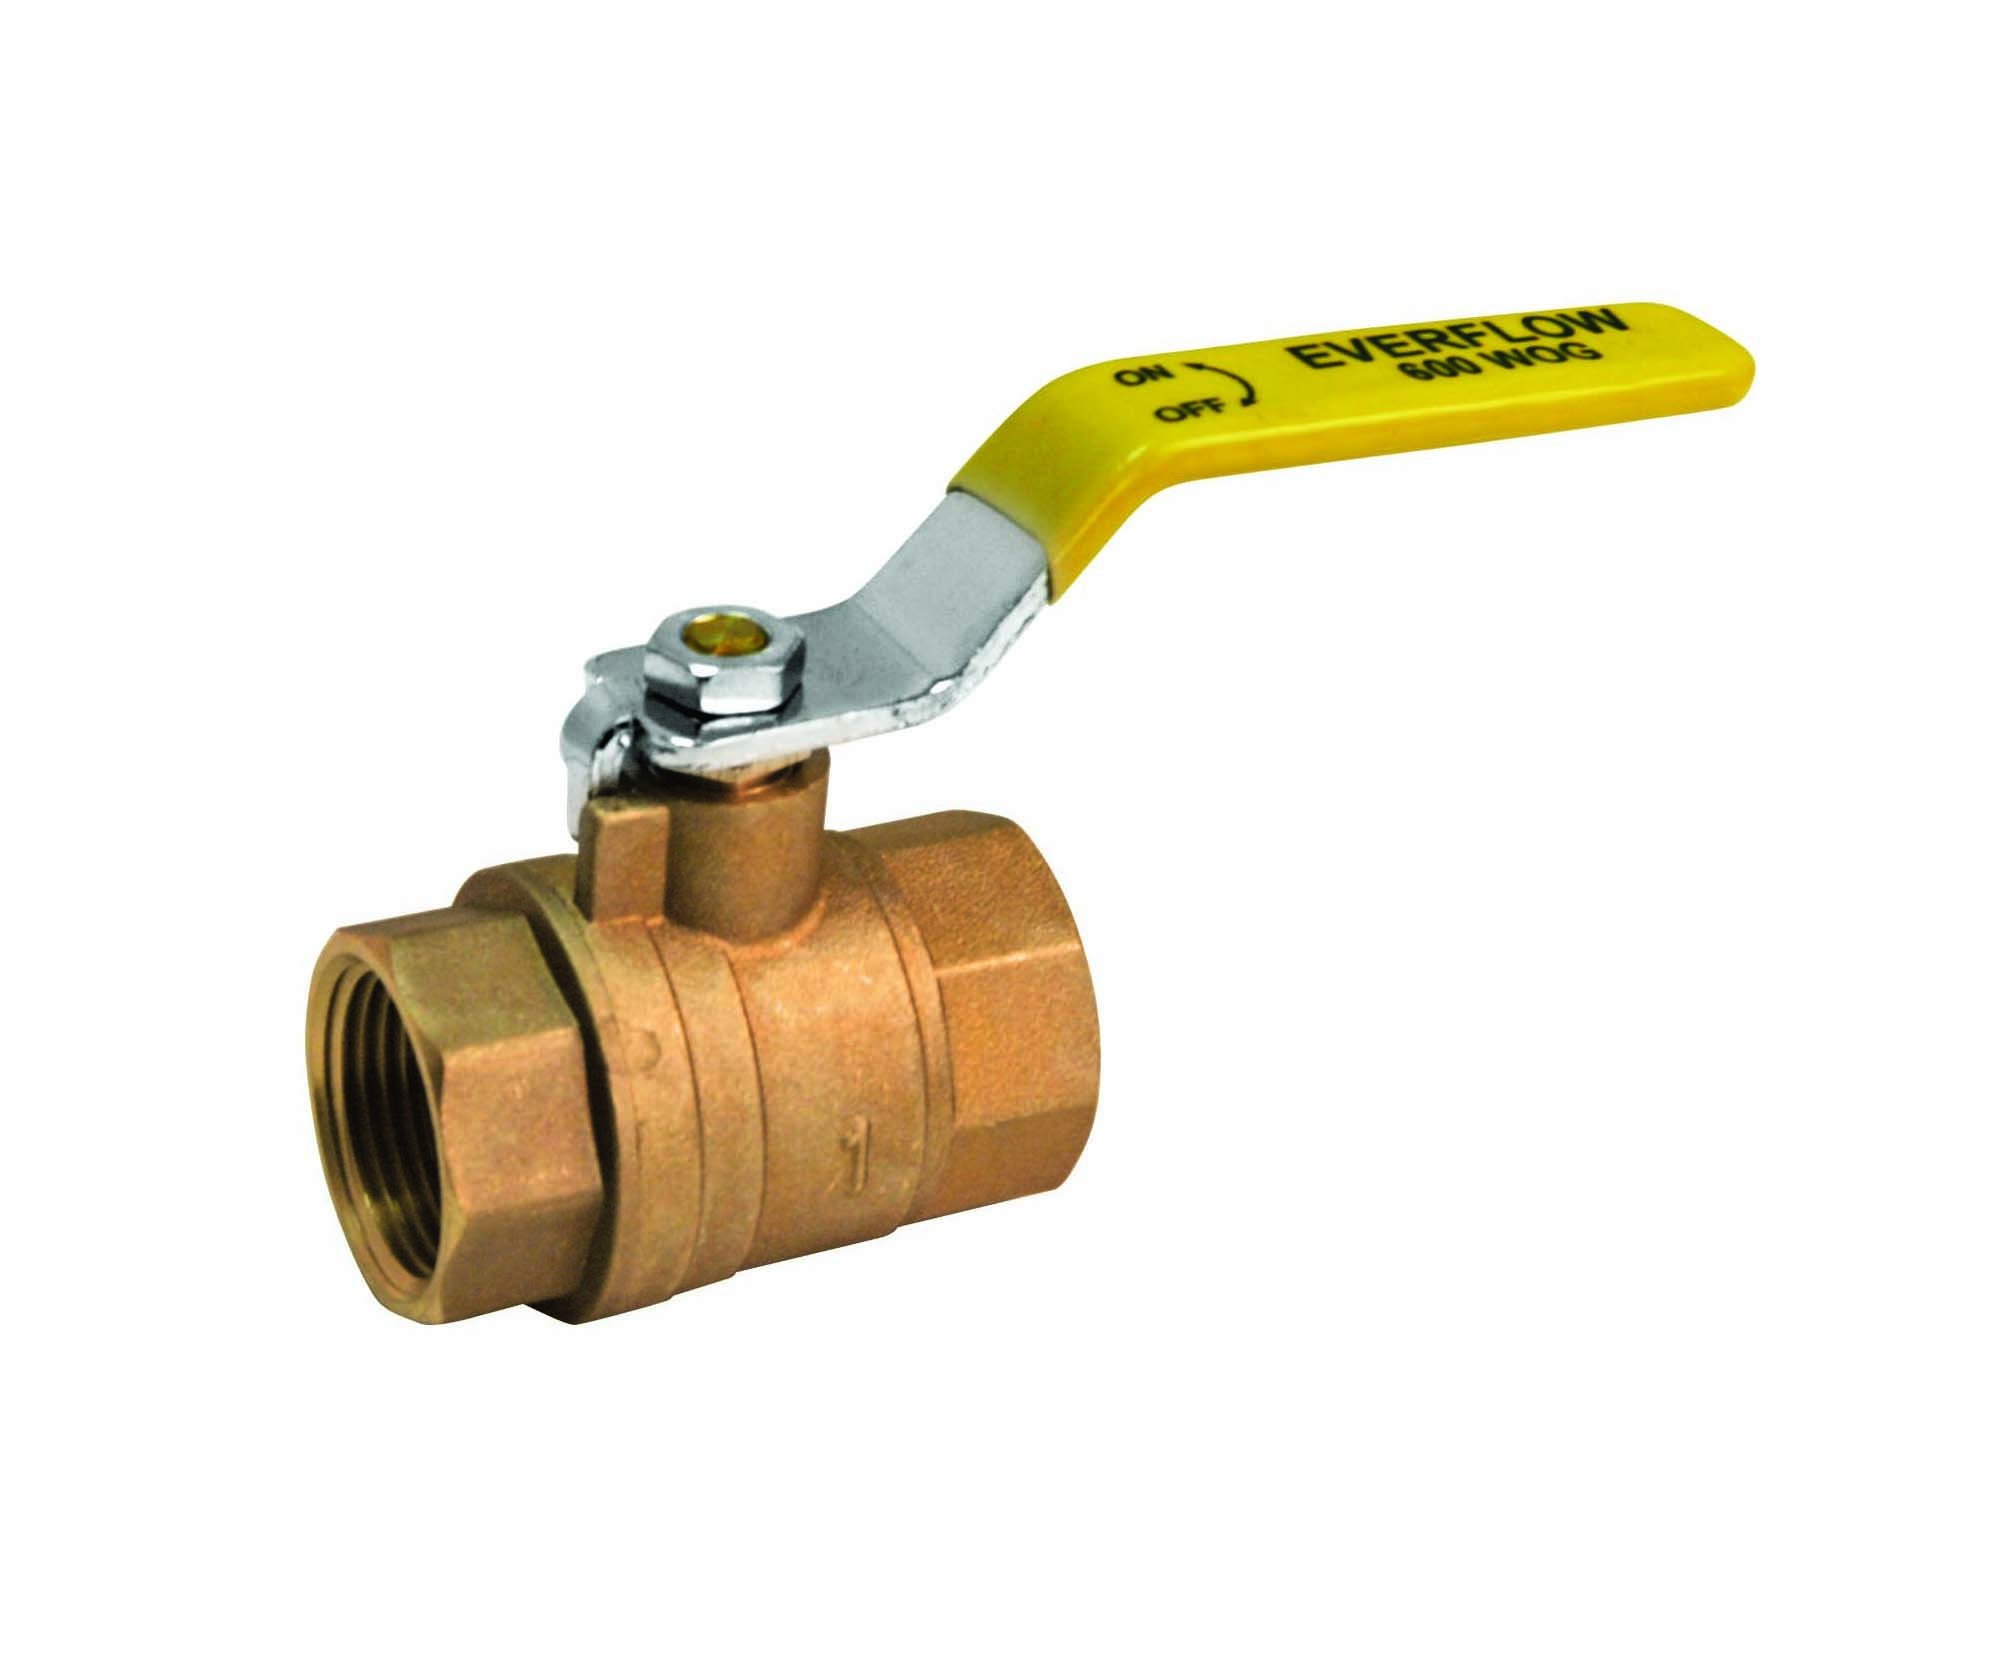 Everflow Supplies 600T114-NL Lead Free Full Port Forged Brass Ball Valve with Female Threaded IPS Connections, 1-1/4''